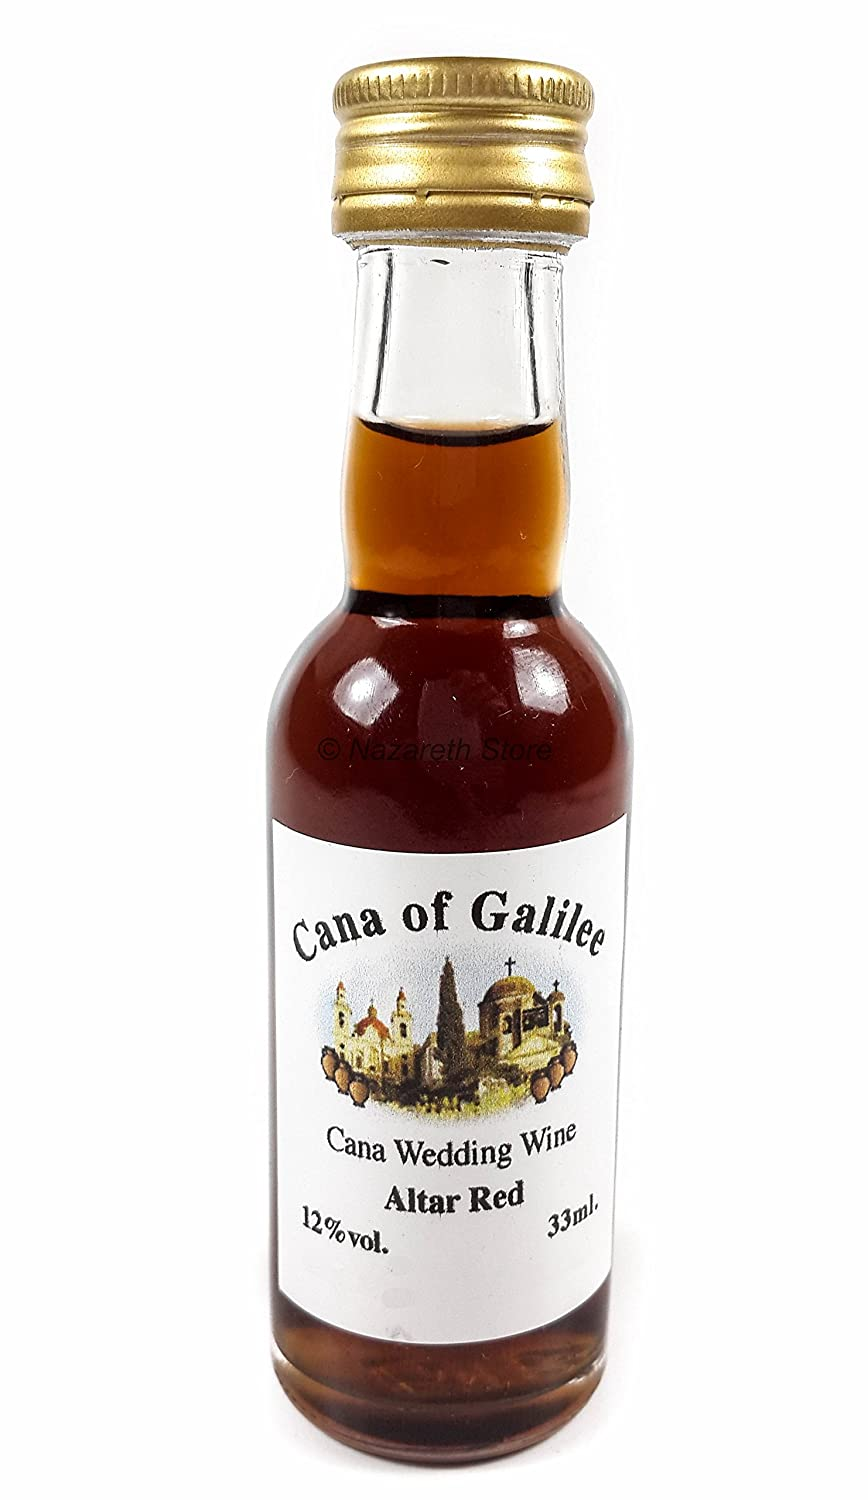 cana of galilee red wine is available in a 40ml glass bottle weighing 135g the red wine has a distinct sweet taste as itu0027s made from the finest red grapes - Best Red Wine